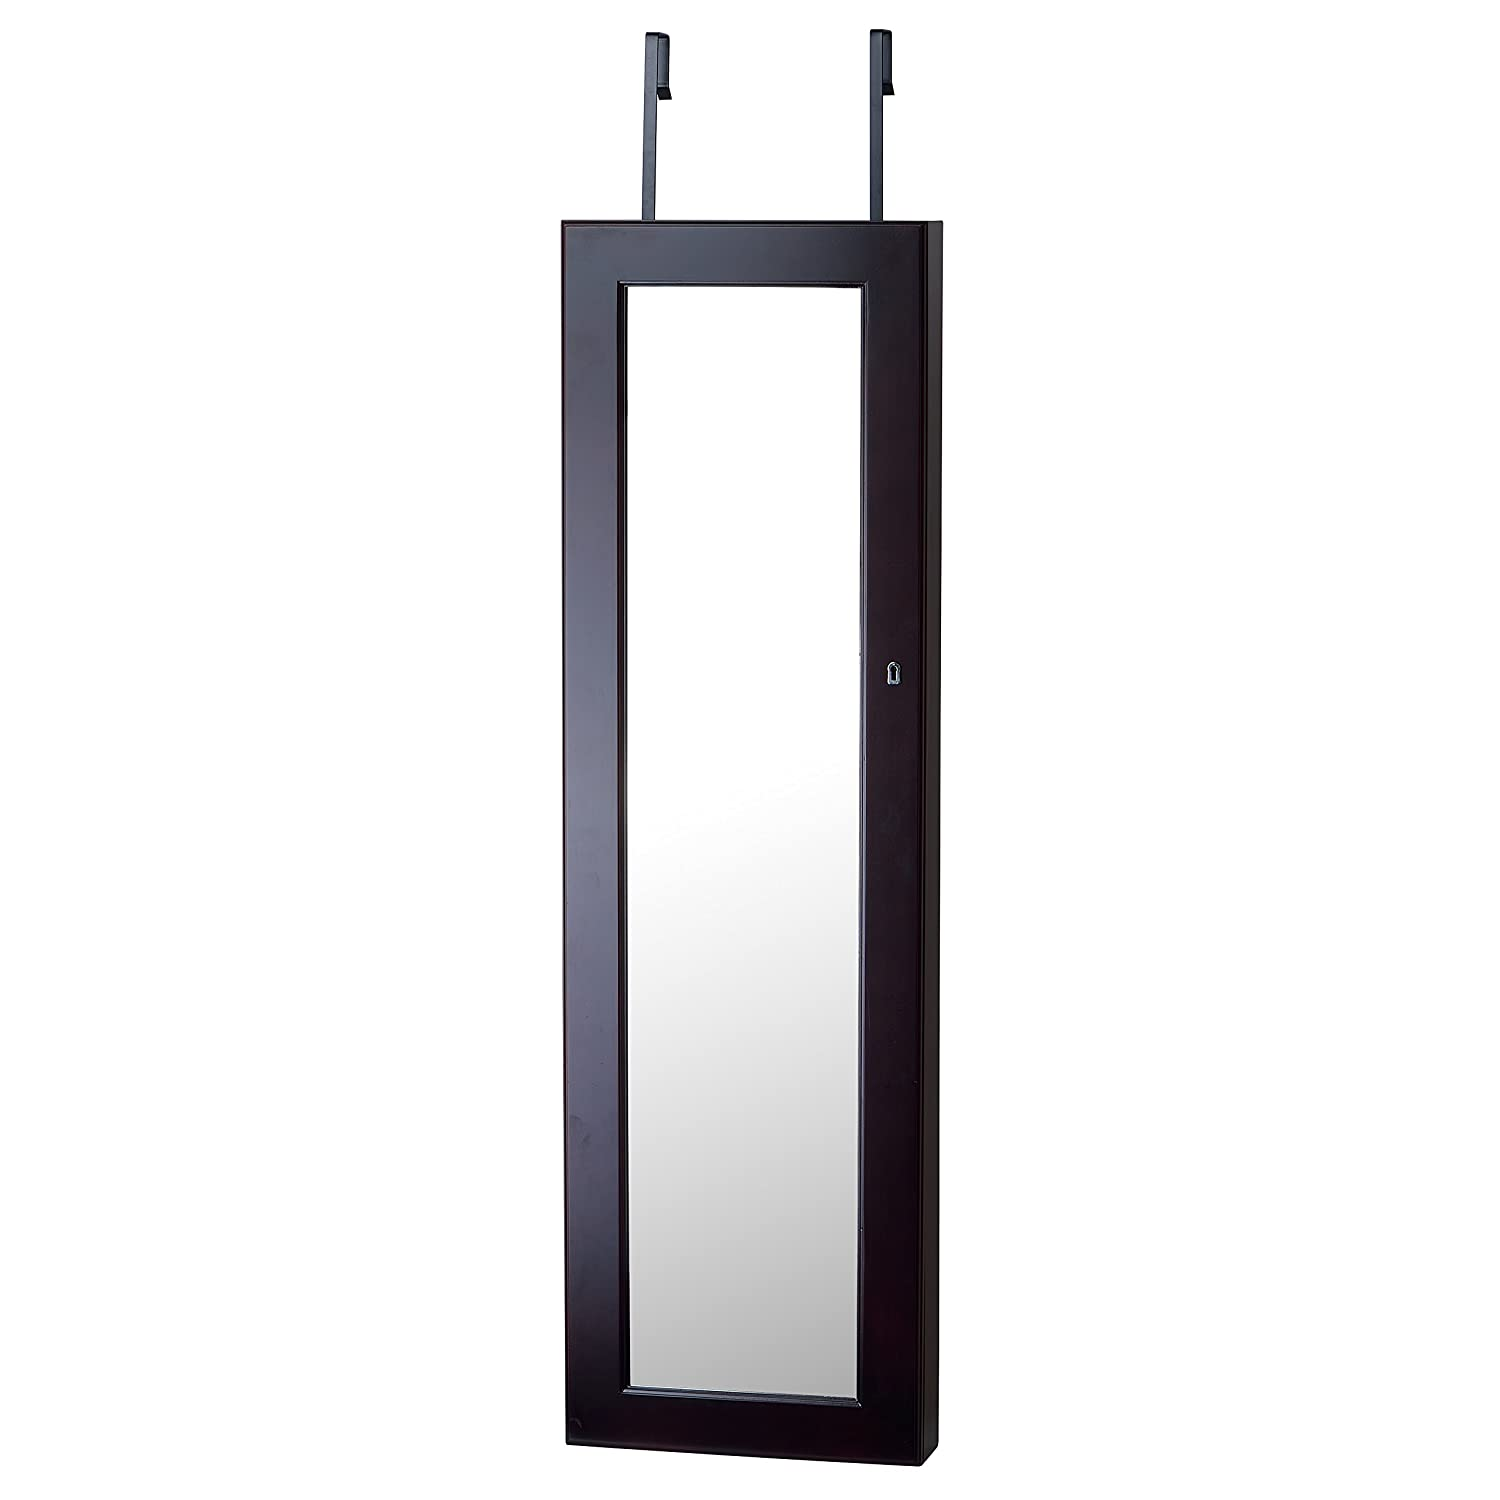 door homegear mounted with black stand storage organizer wall armoire o jewelry mirrored cabinet